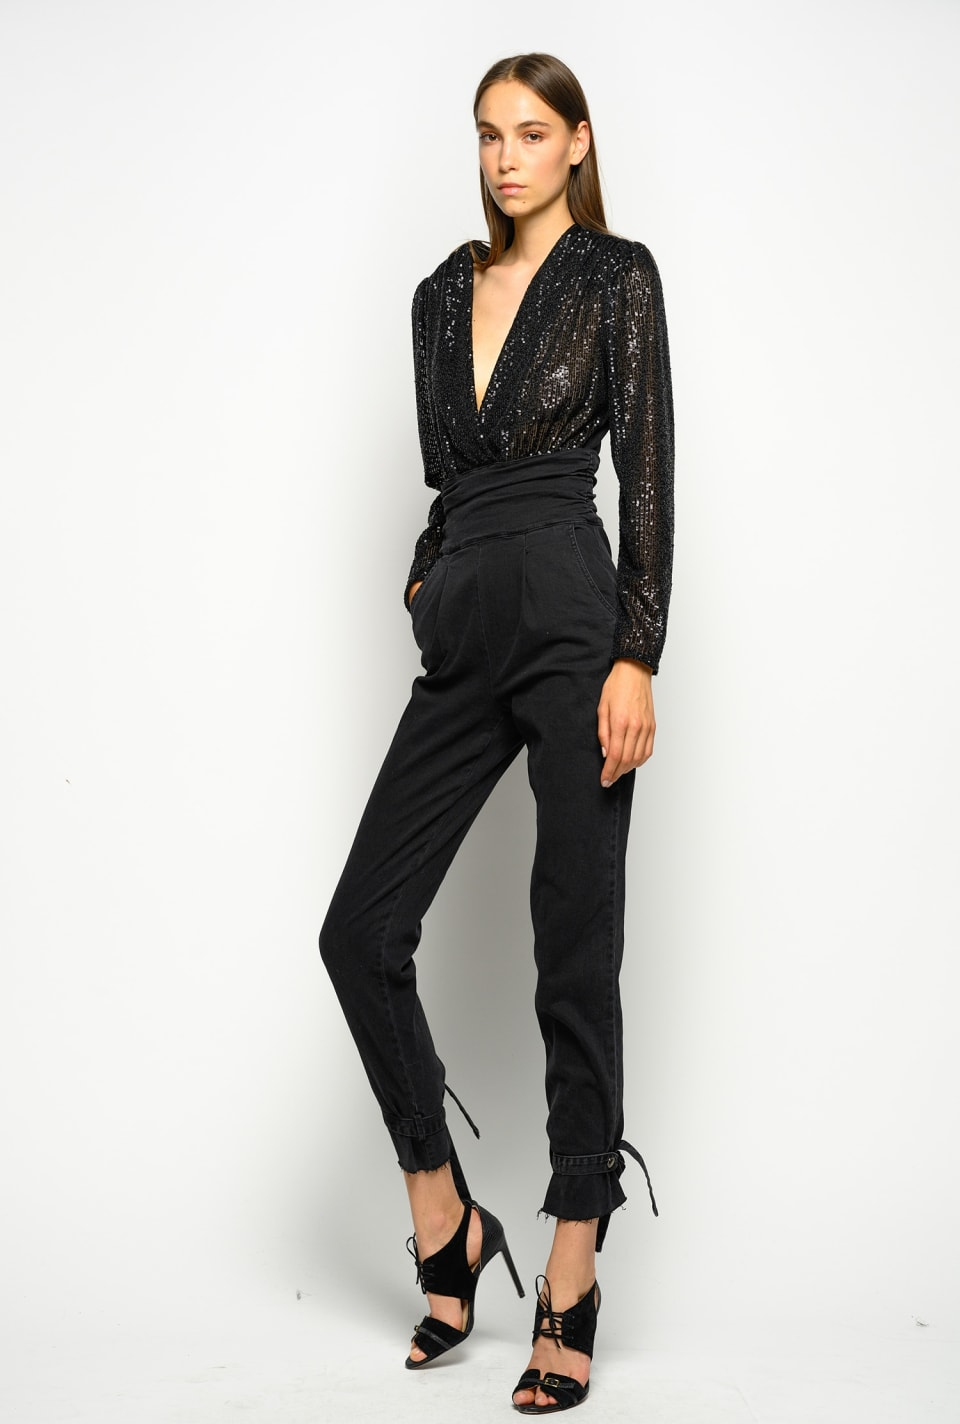 Tuta in comfort denim black e paillettes - Pinko